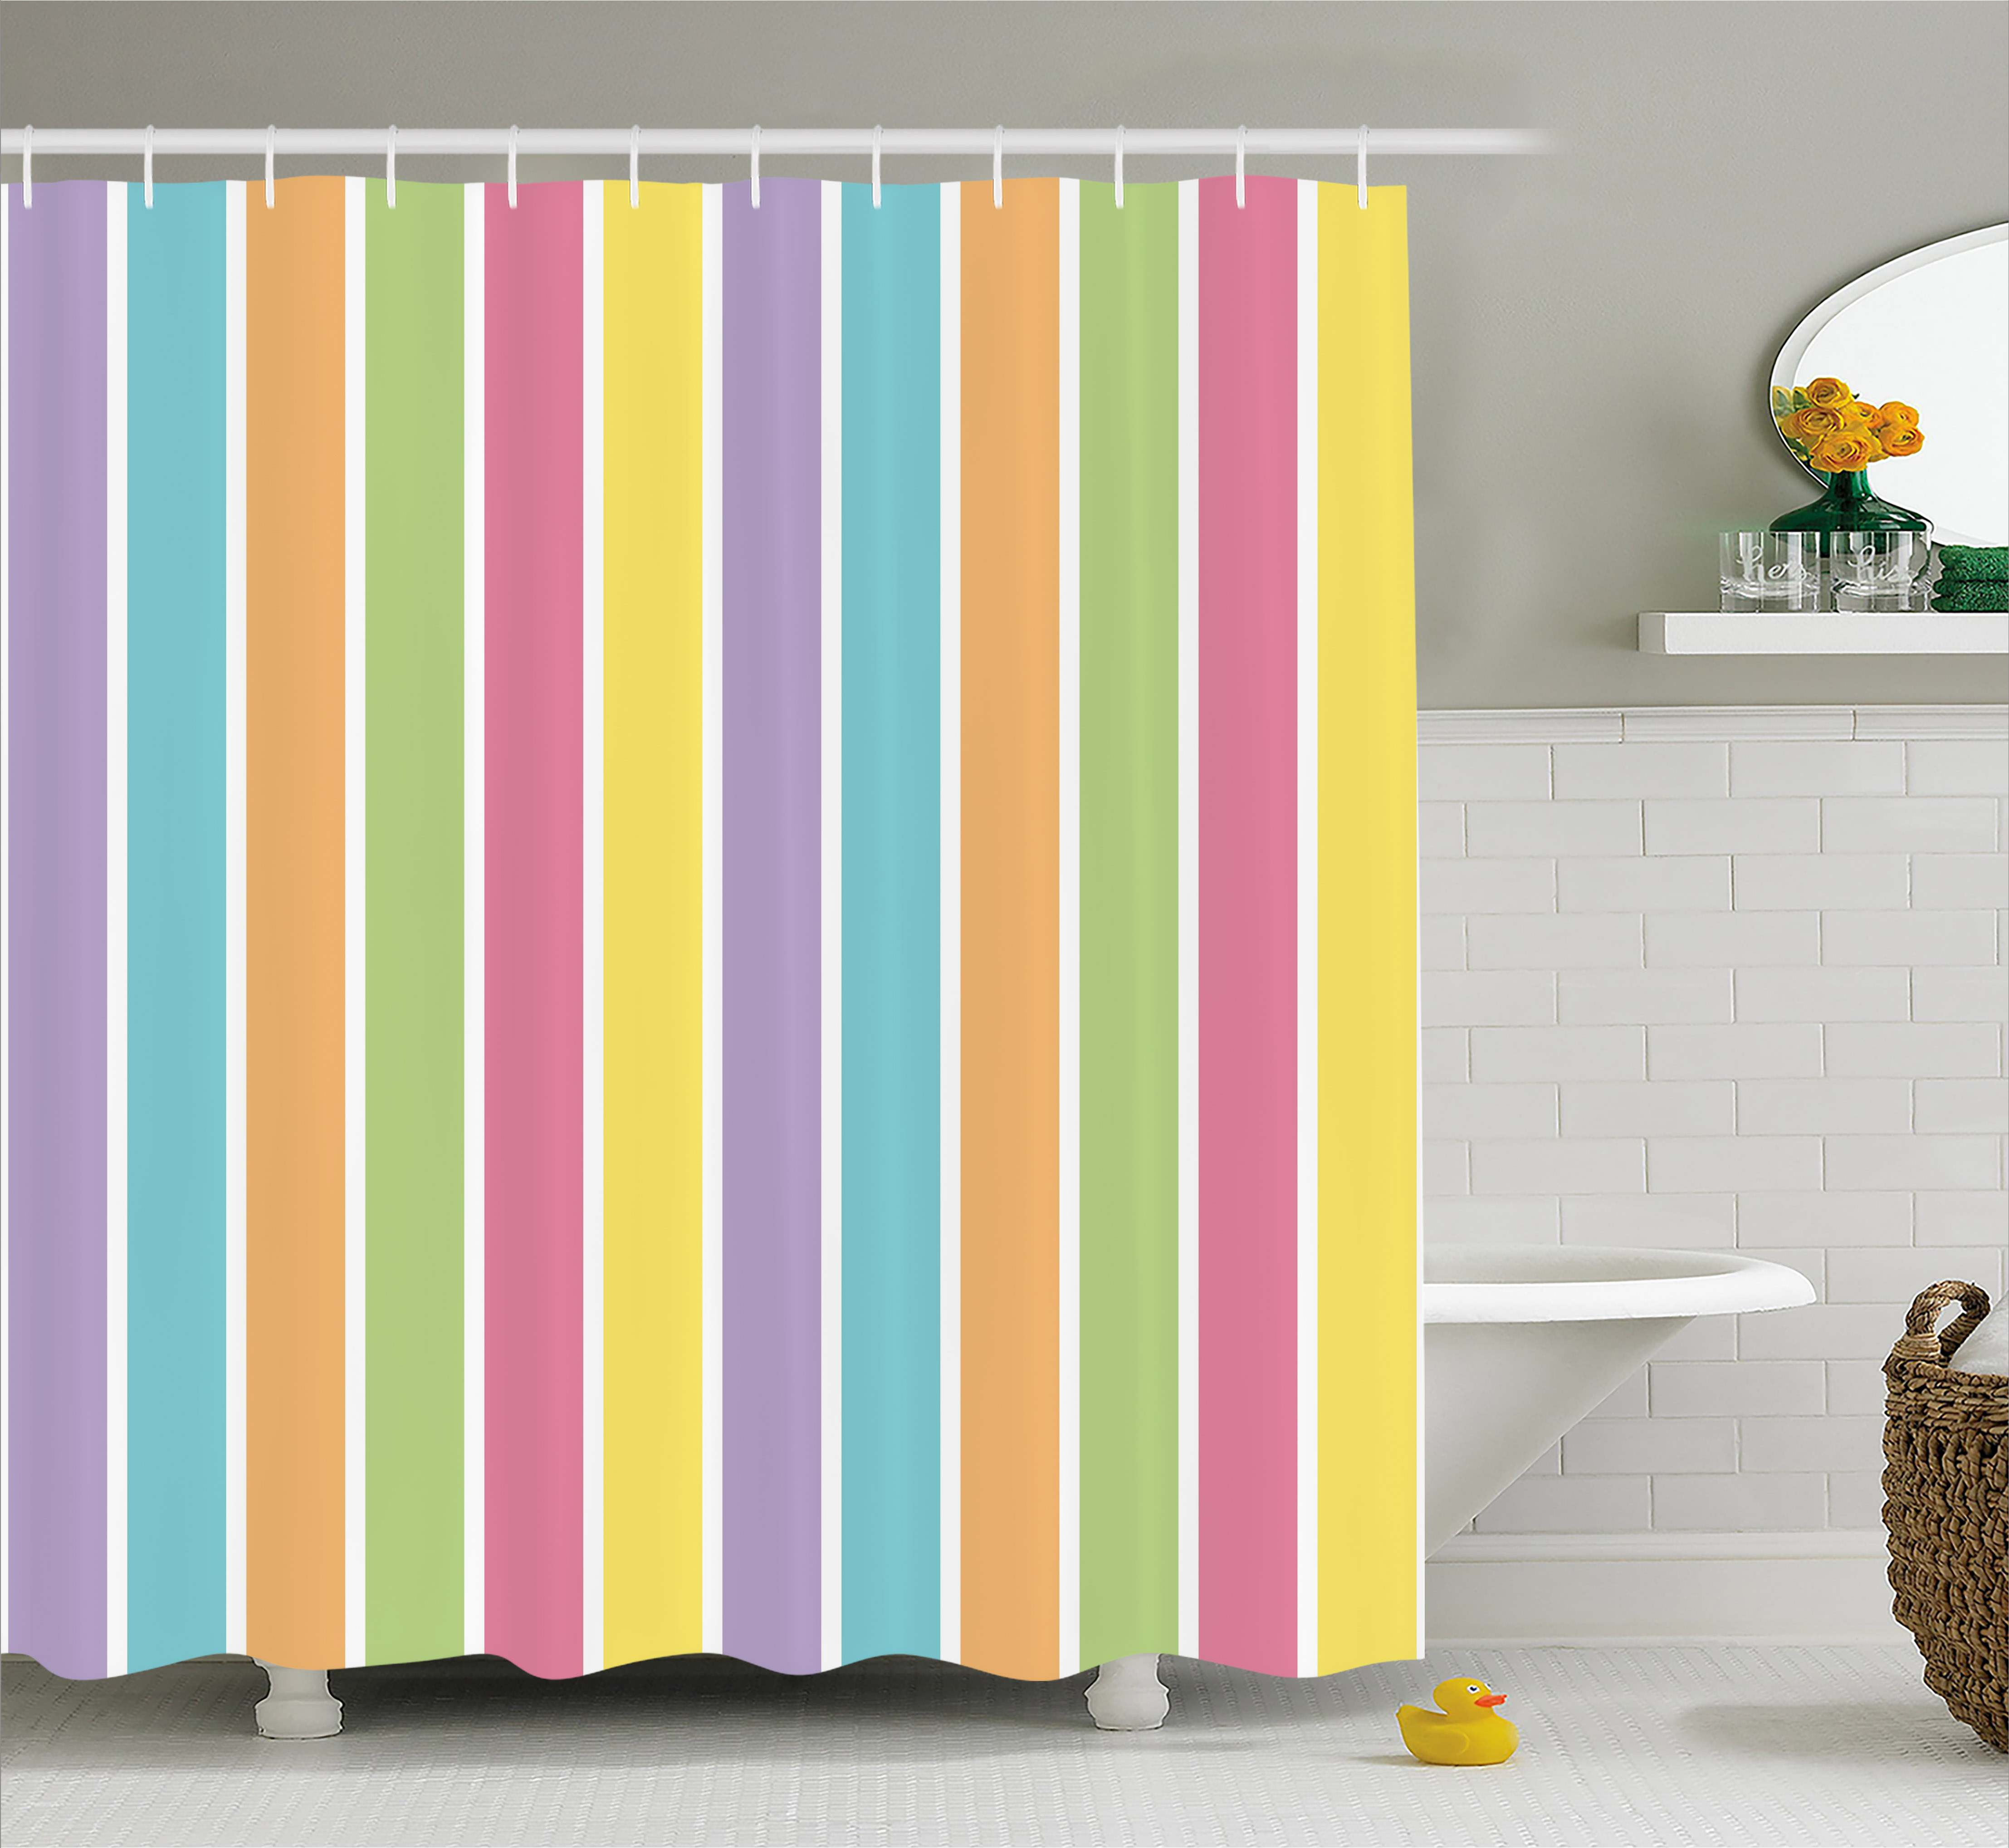 Colorful Shower Curtain, Pastel Colored Striped Summer Pattern Funky Cheerful Rainbow Inspired Traditional, Fabric Bathroom Set with Hooks, 69W X 75L Inches Long, Multicolor, by Ambesonne